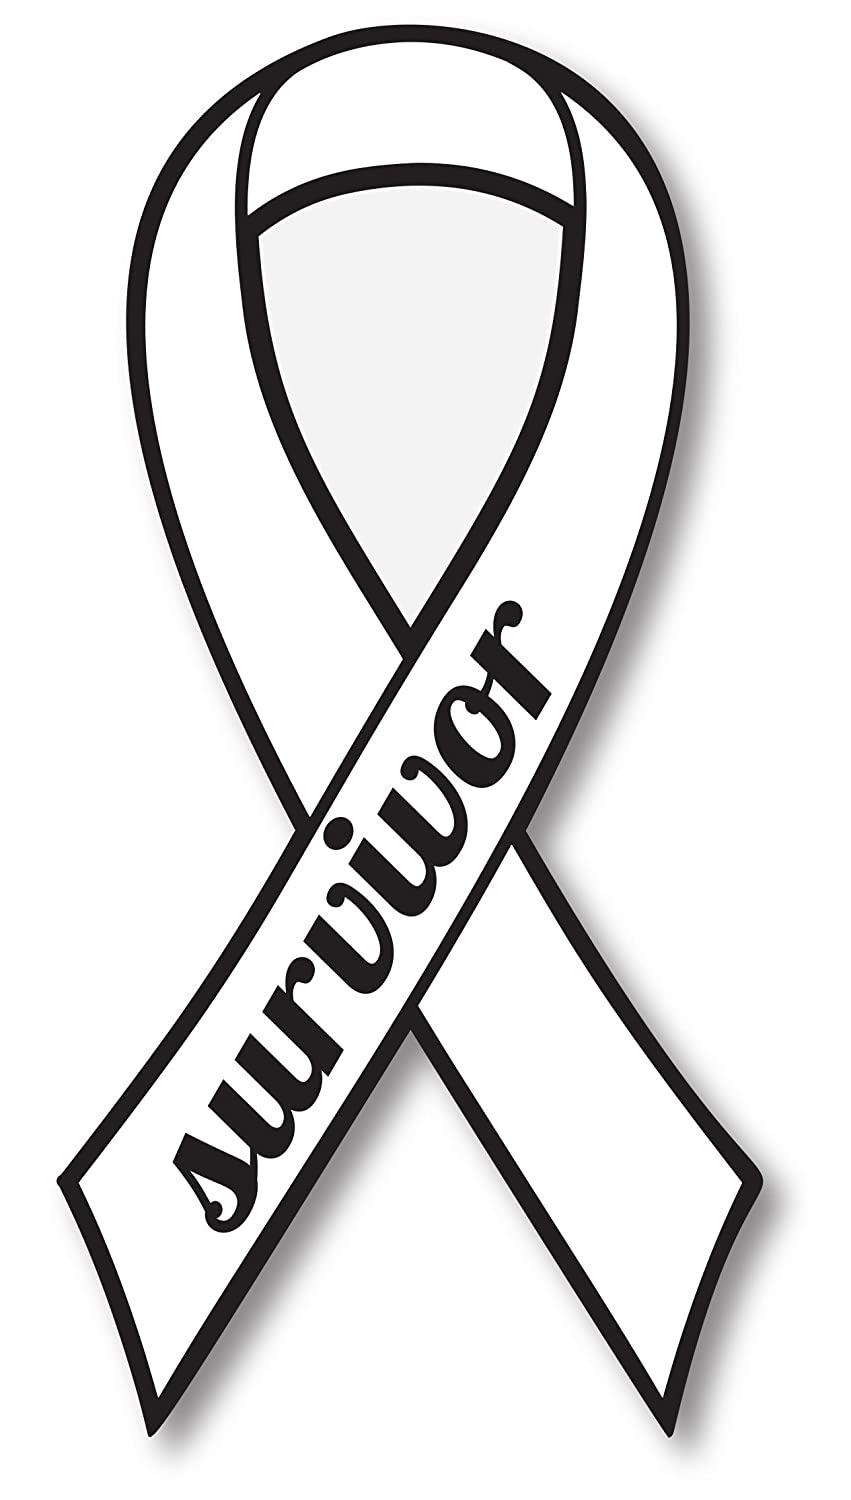 White Lung Cancer Survivor Ribbon Car Magnet Decal Heavy Duty Waterproof